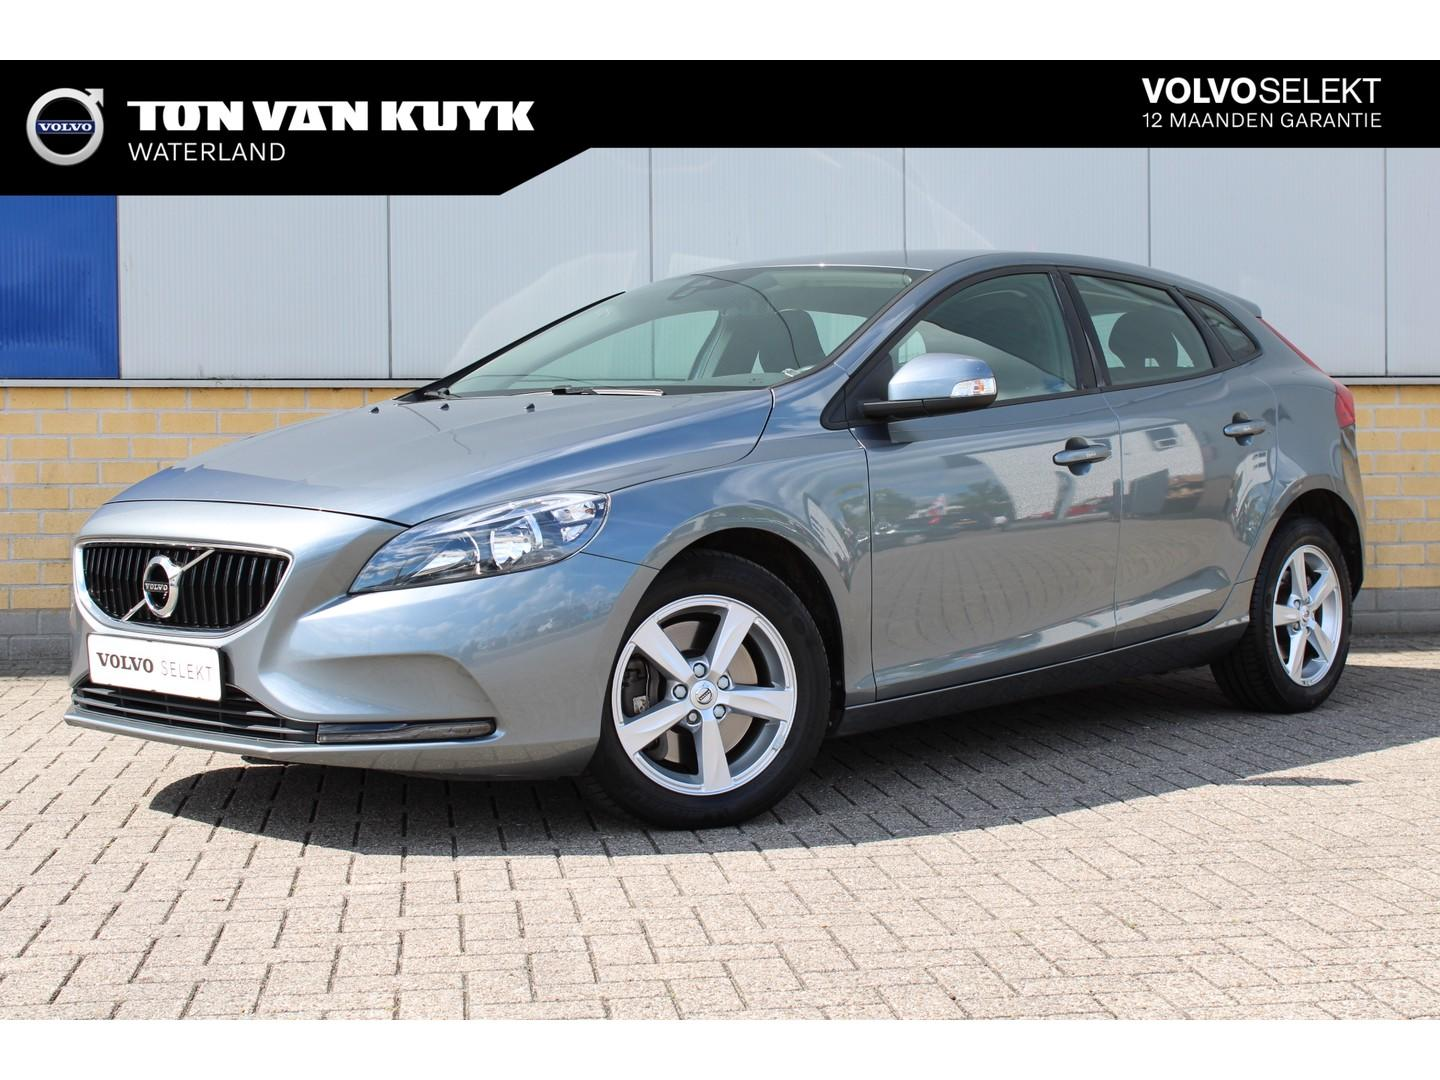 Volvo V40 T2 122pk automaat kinetic / navigatie / bluetooth / cruise control